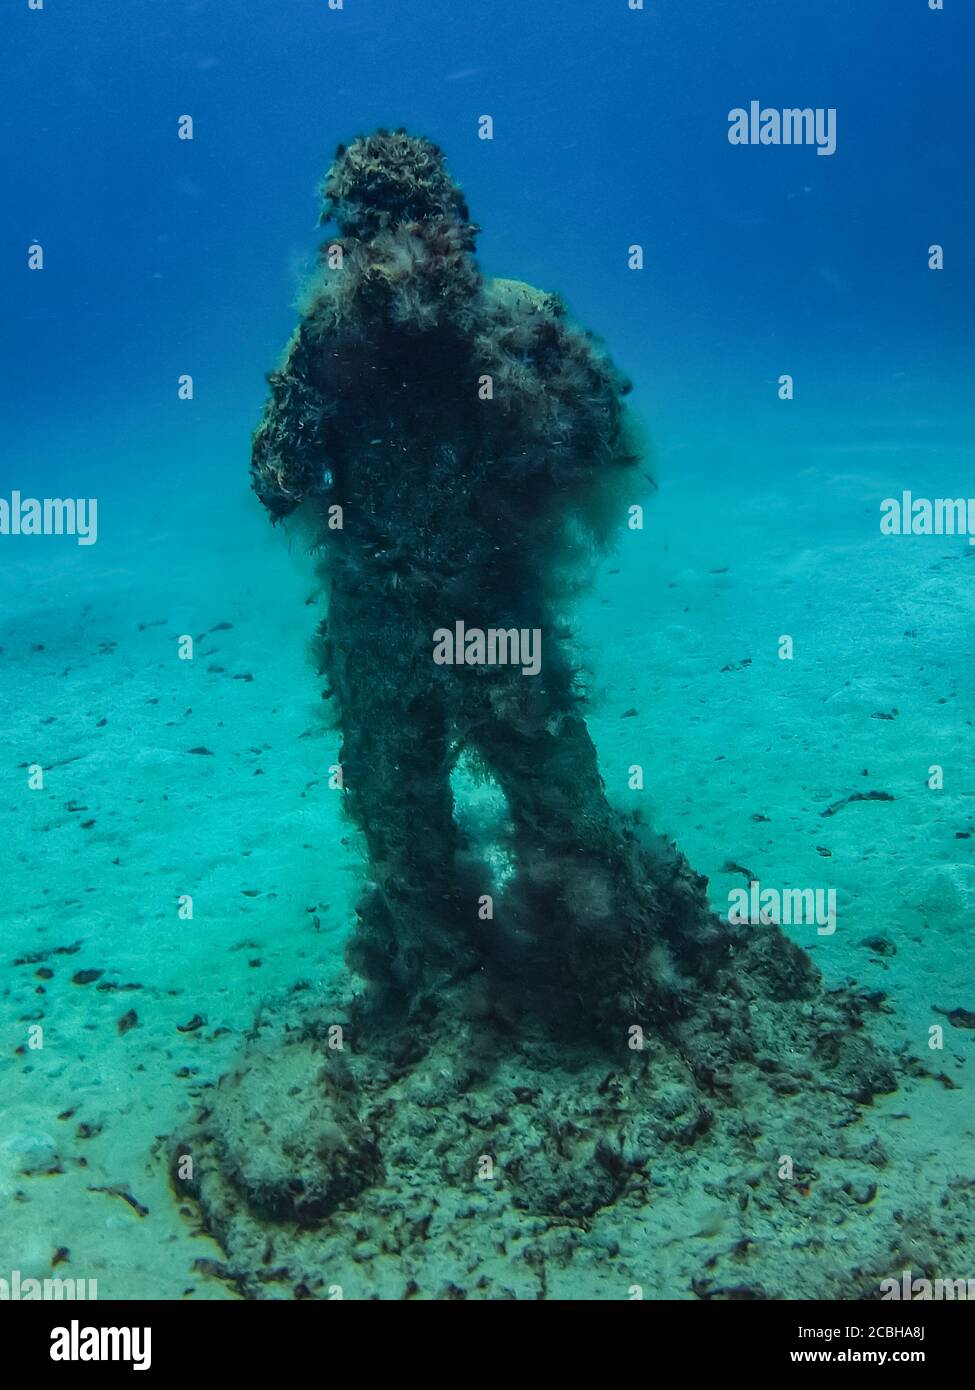 """""""Foto Op"""" sculpture of an underwater photographer by Jason deCaires Taylor in the Museo Atlantico underwater museum off Playa Blanca, Lanzarote. Stock Photo"""